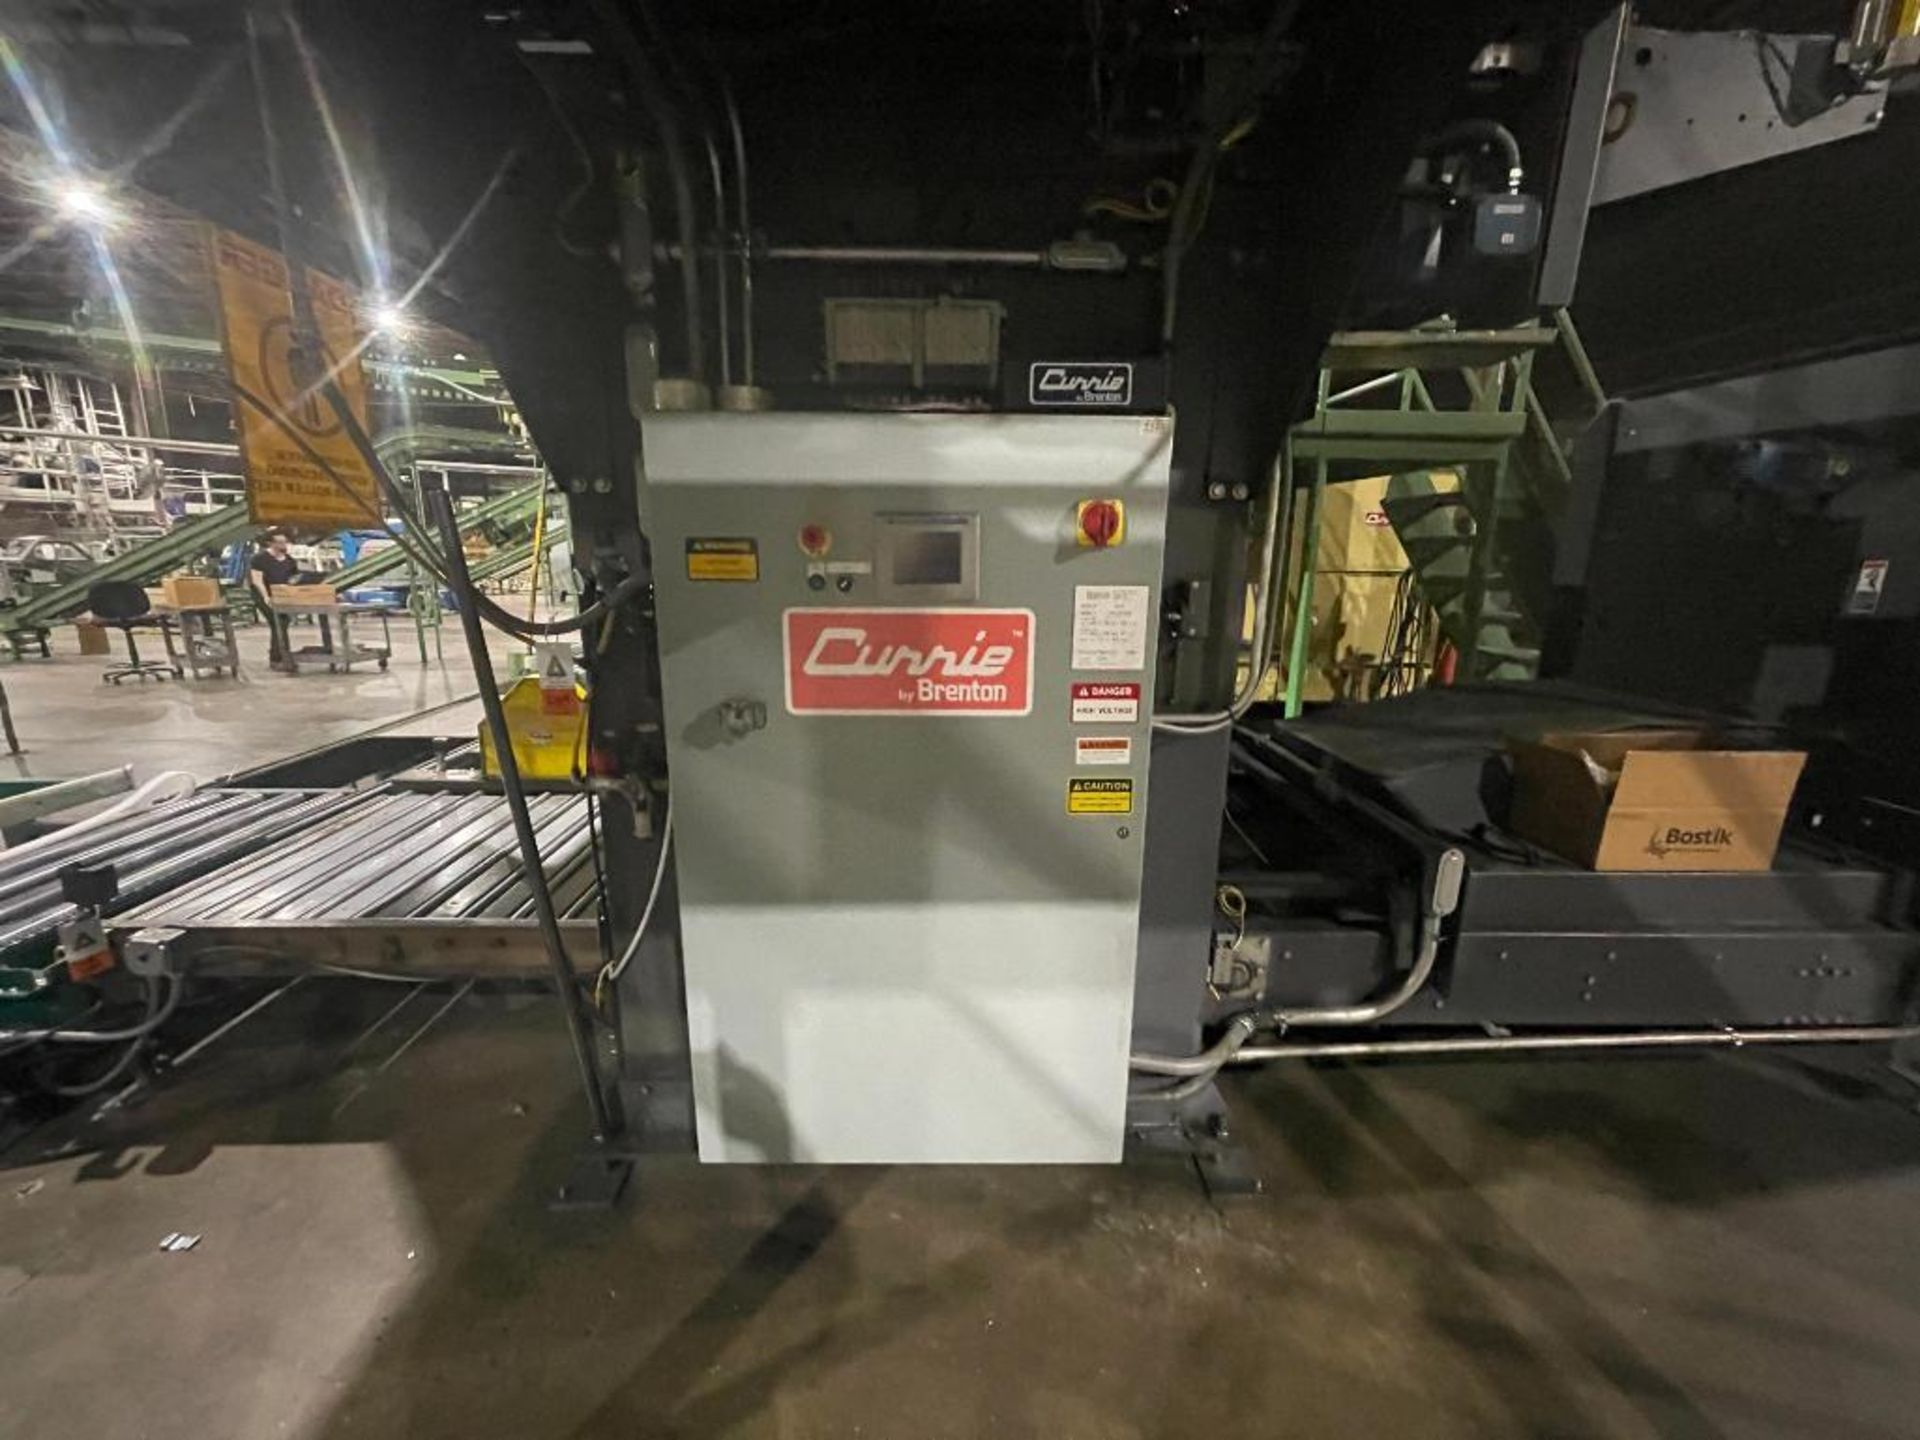 2008 Currie top to bottom palletizer, model PALLETIZER, sn 3348 - Image 11 of 28